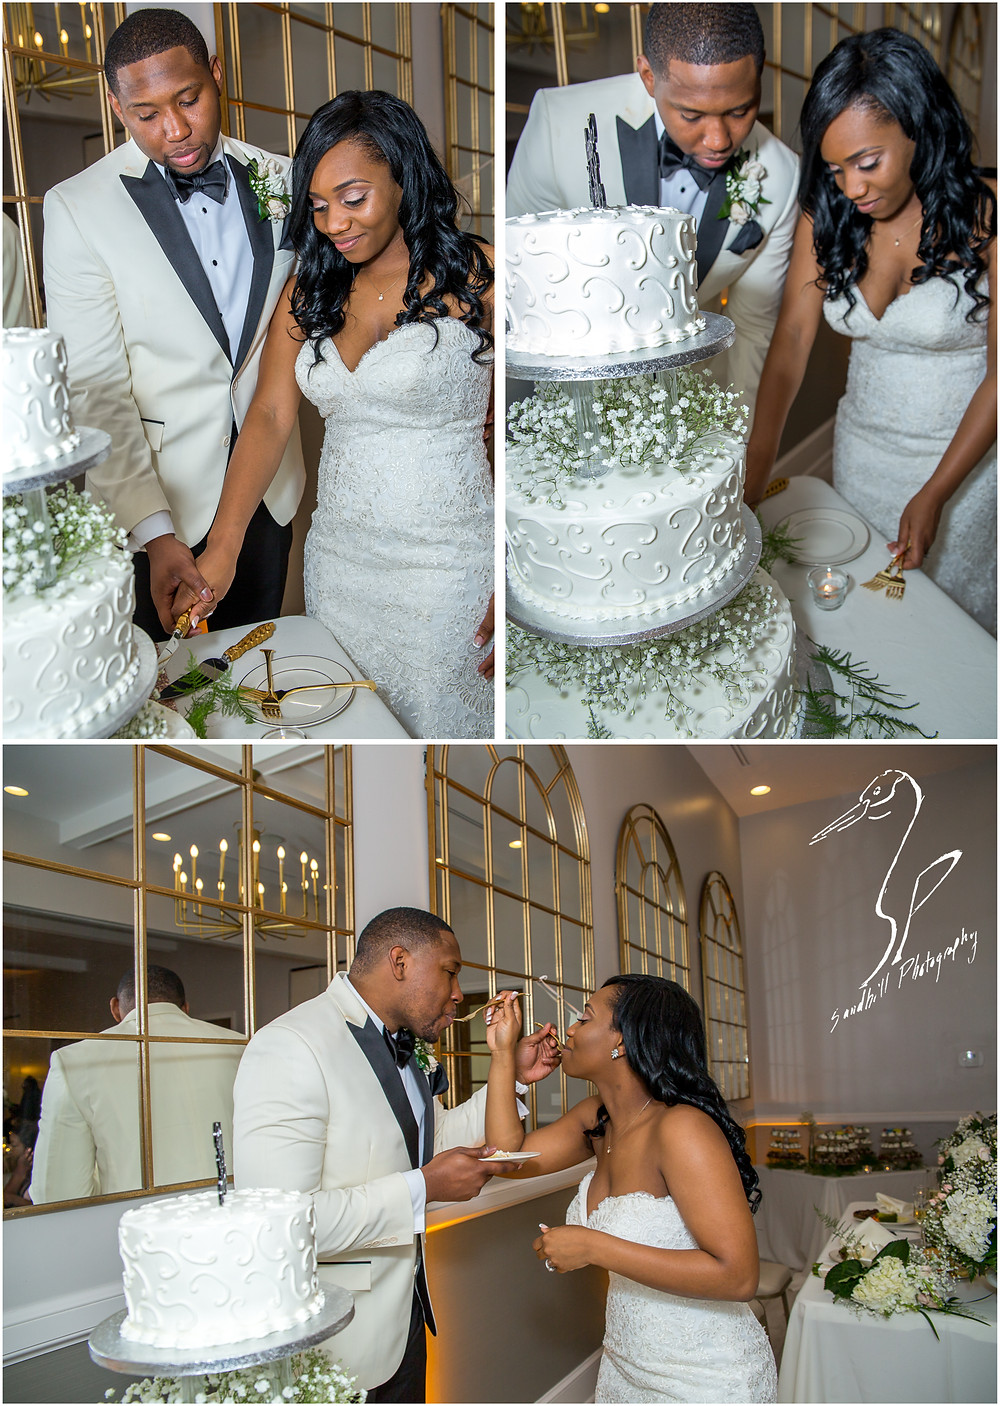 Bradenton Wedding Photographer, bride and groom cut the cake at their reception at the Mirabay Club